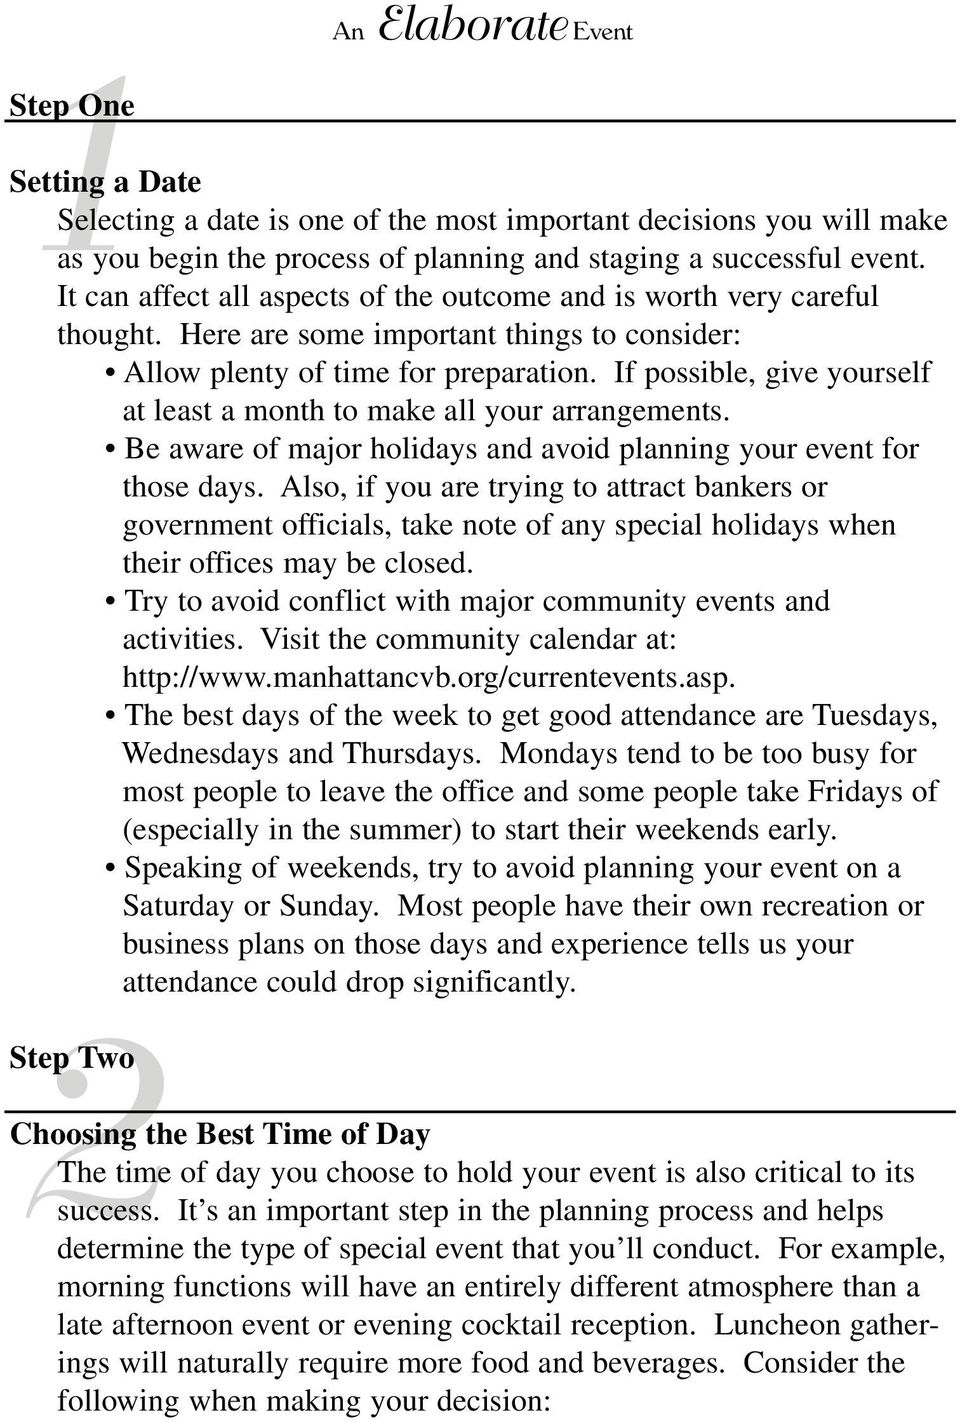 If possible, give yourself at least a month to make all your arrangements. Be aware of major holidays and avoid planning your event for those days.